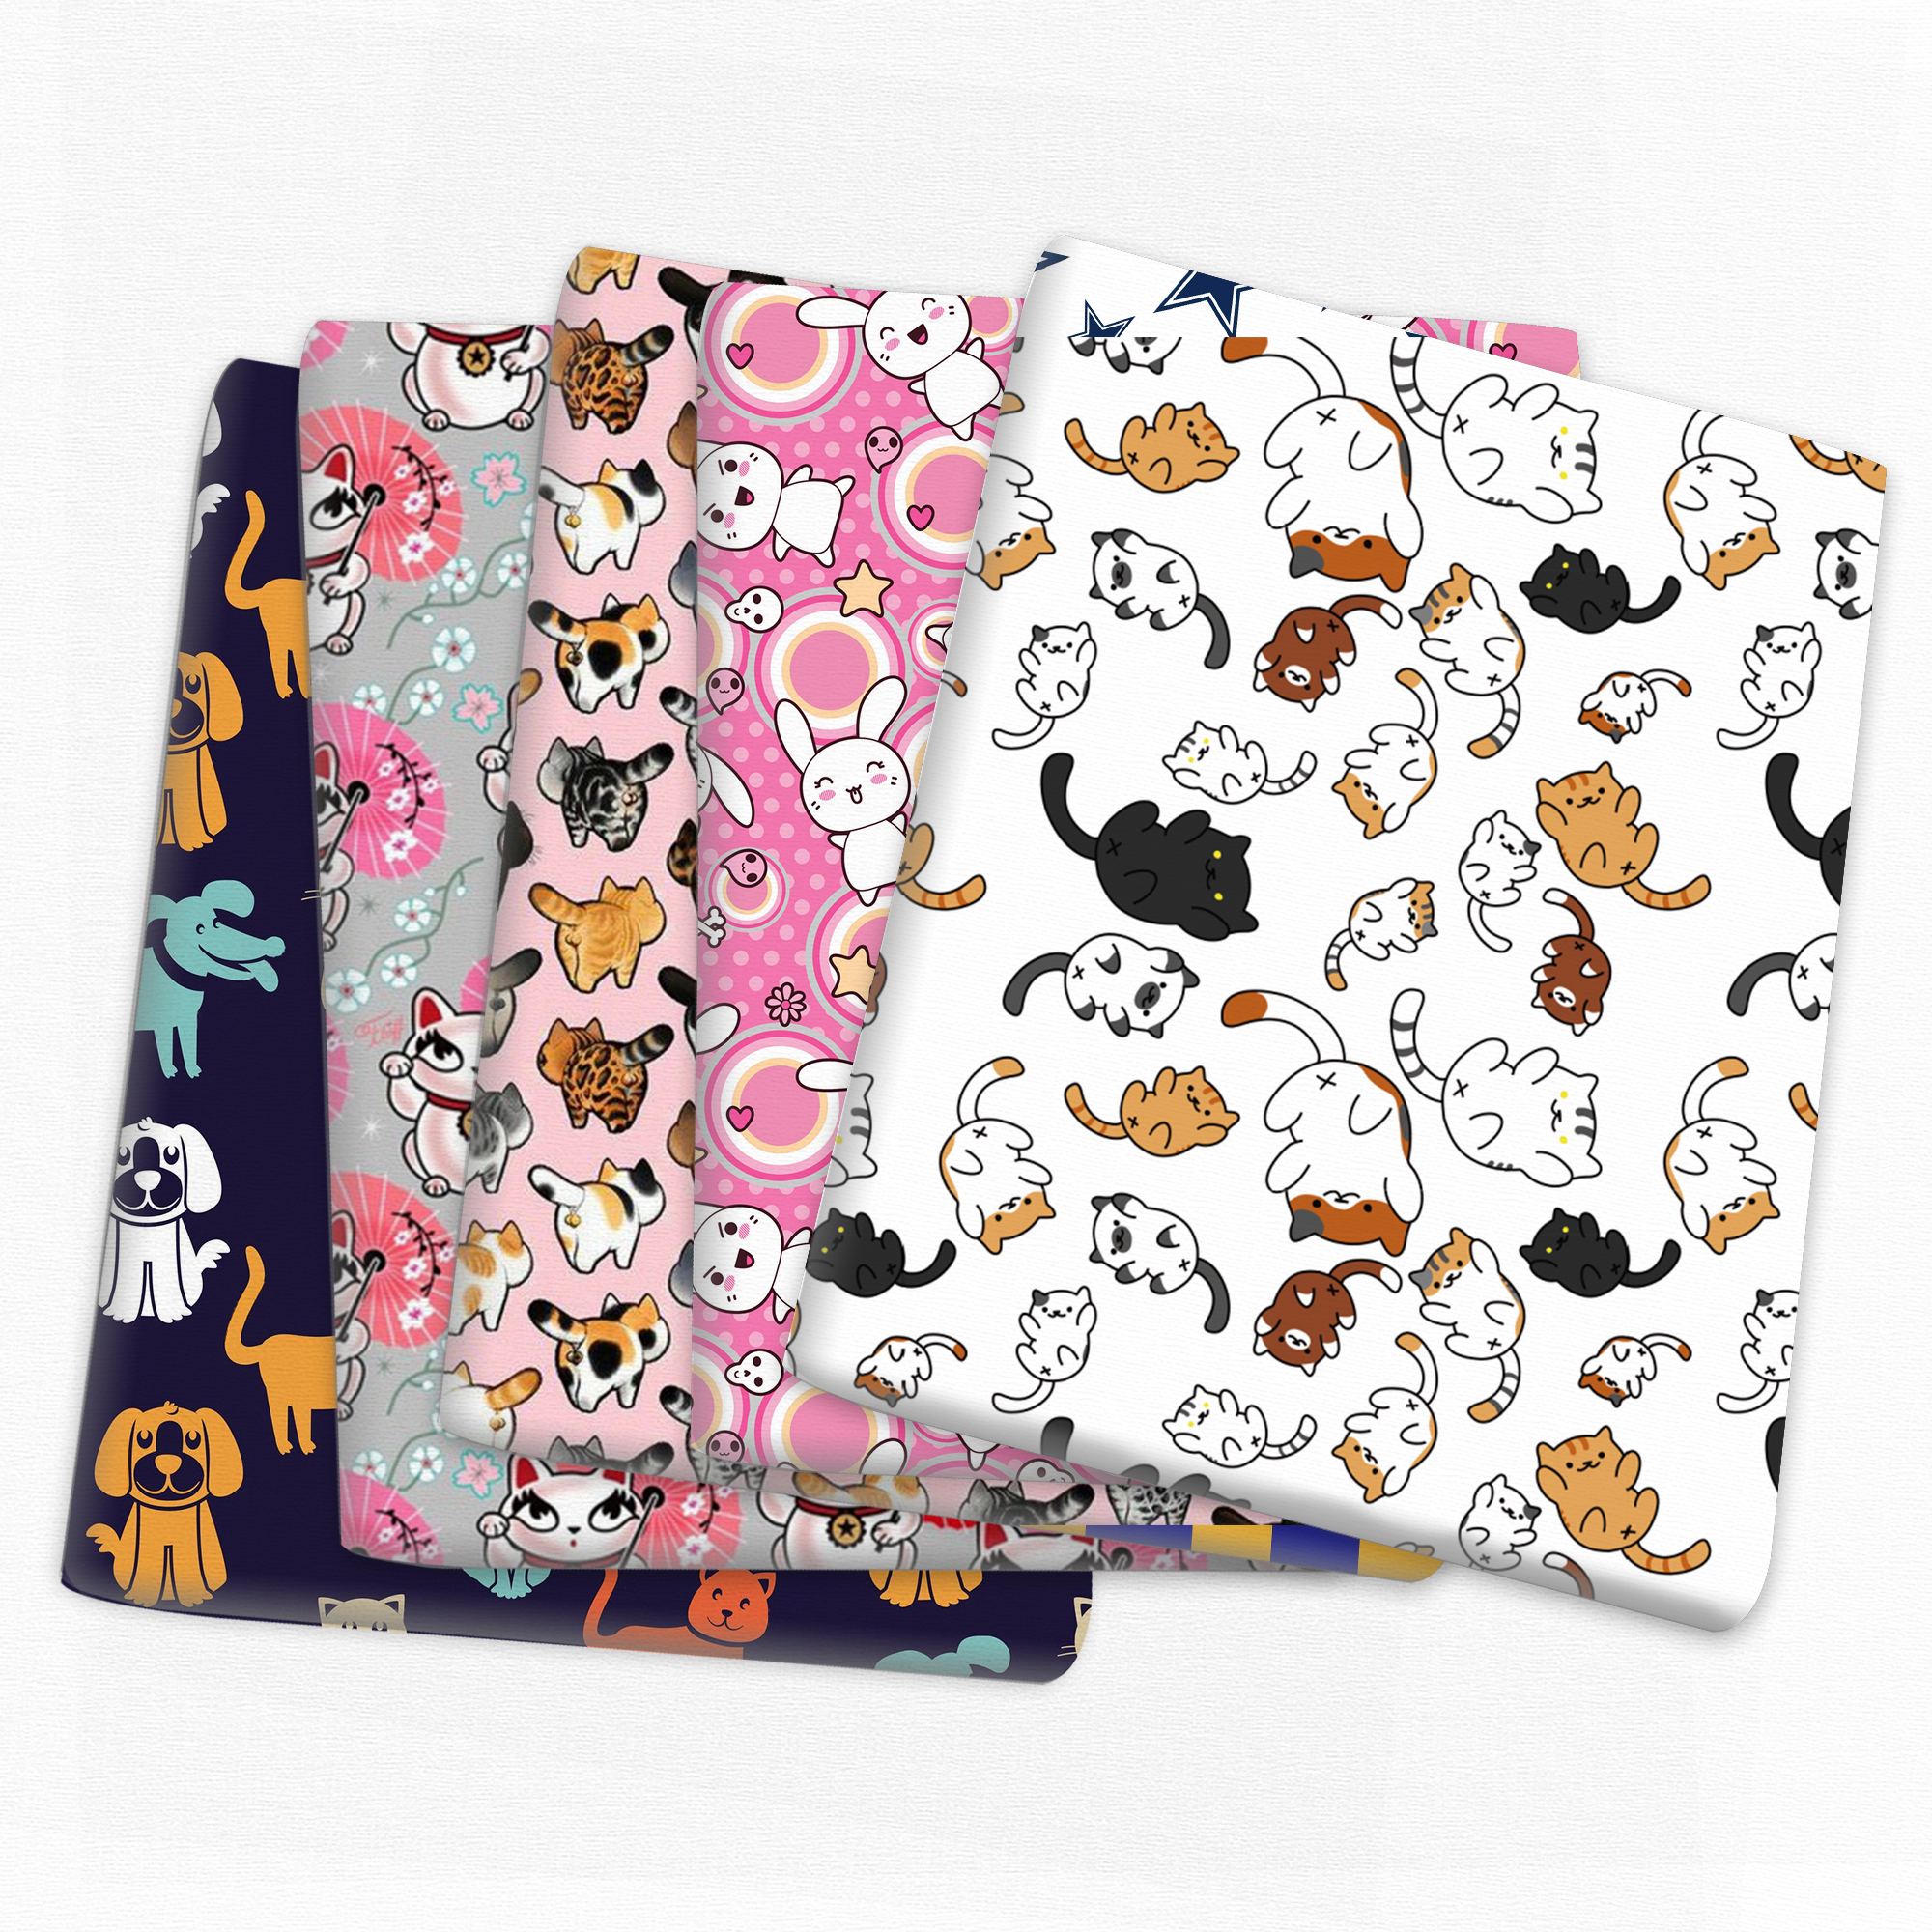 Patchwork Cat Printed Polyester Cotton Fabric for Tissue Sewing Quilting Fabrics Needlework Material DIY Handmade,1Yc16049